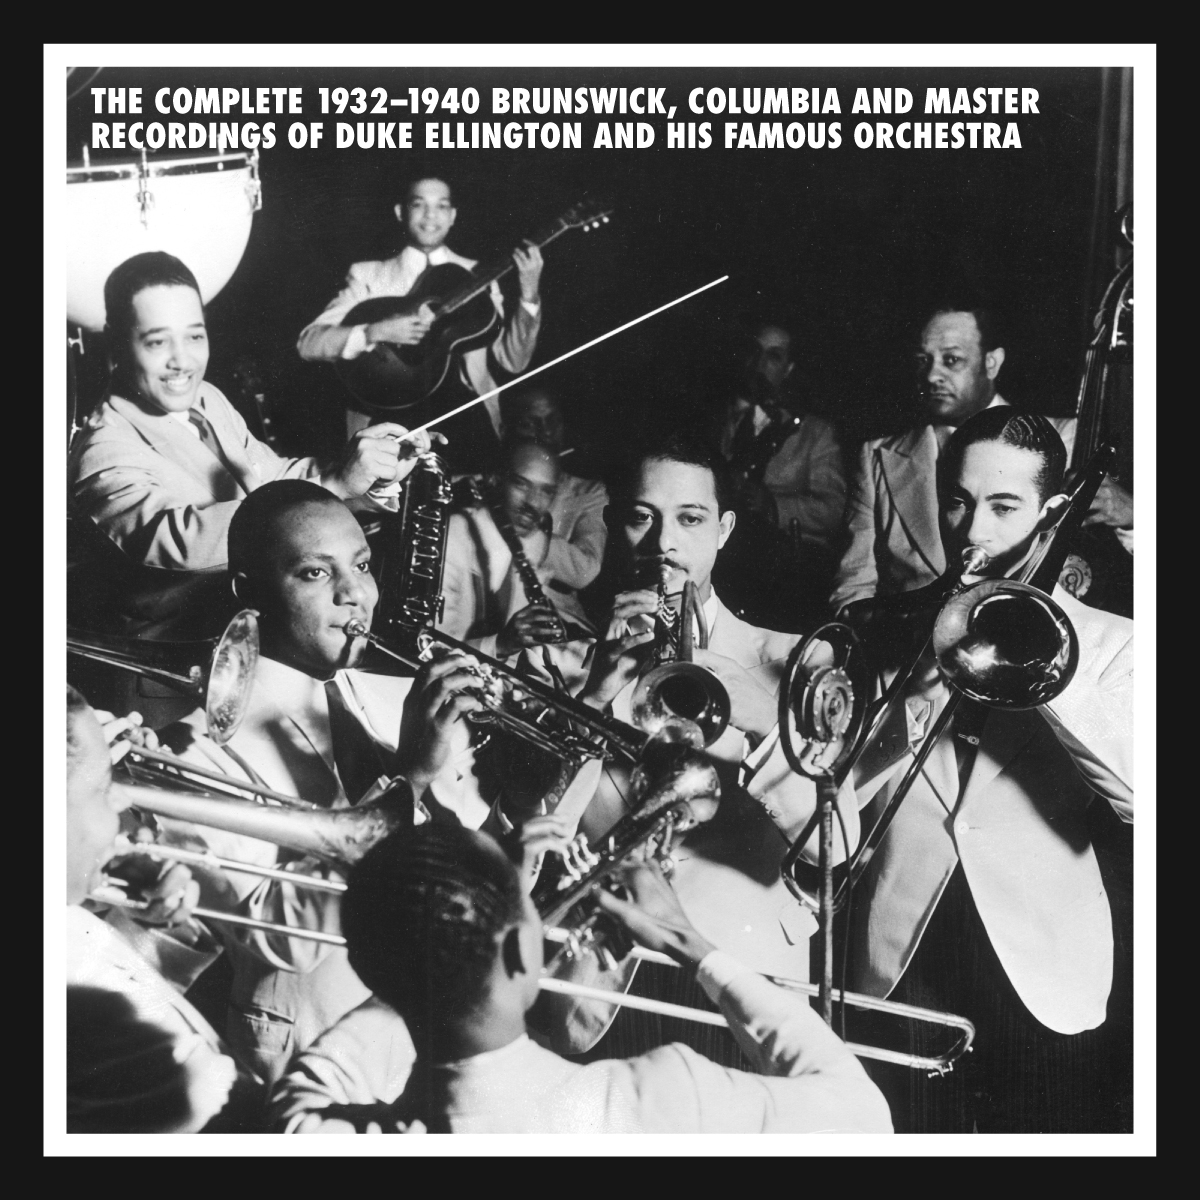 The Complete 1932-1940 Brunswick/Columbia/Master Recordings of Duke Ellington and His Famous Orchestra (11 CDs)